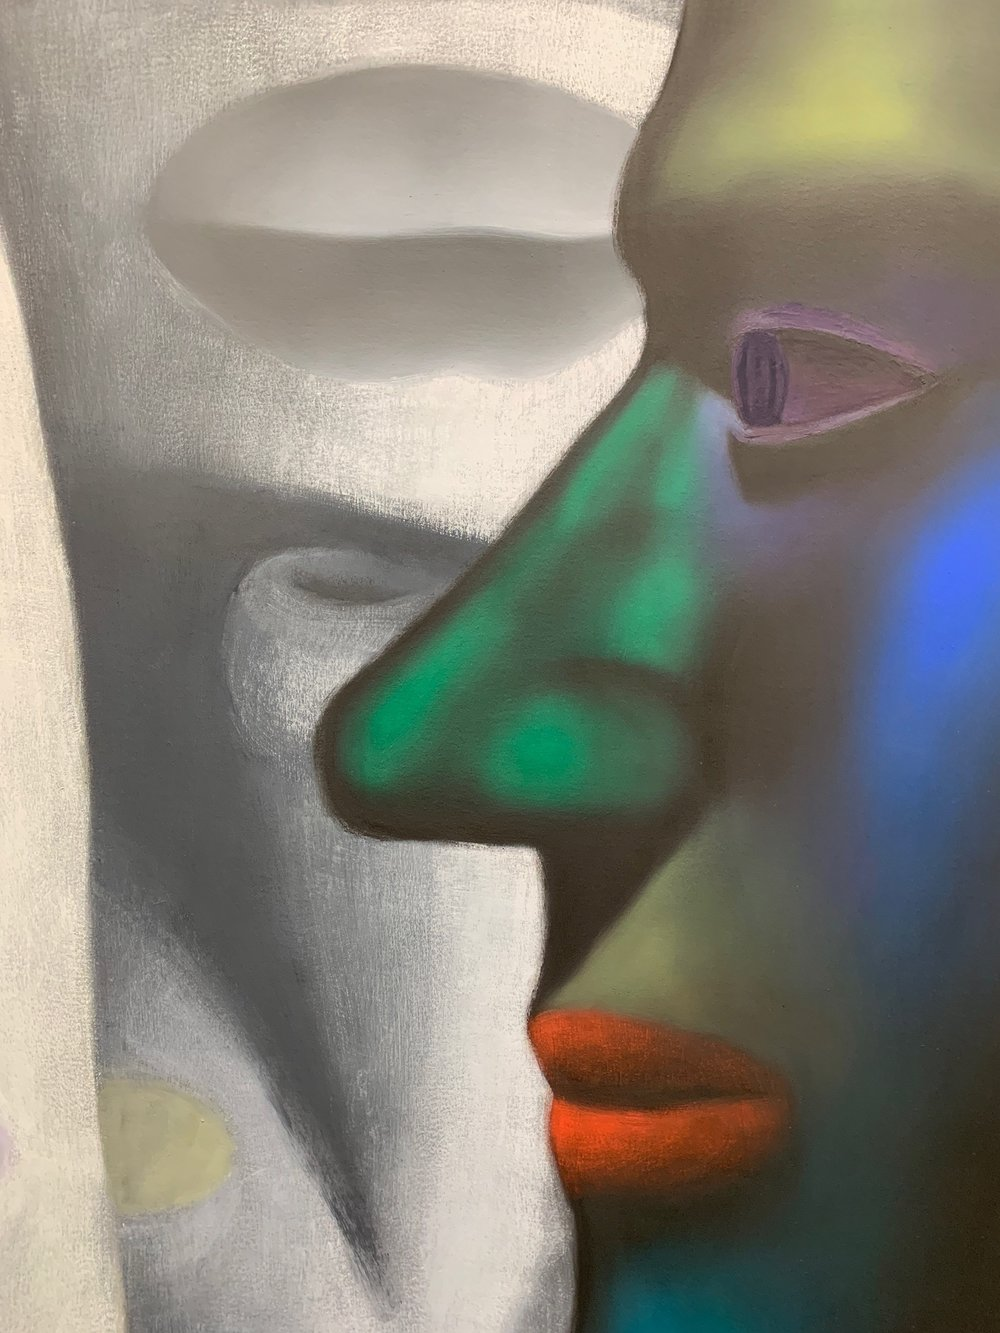 """""""Looking at a Painting,"""" Jordan Kasey. Oil on canvas, 65 1/2 x 85 inches, , 2018. Detail photographed by myself at the Nicelle Beauchene Gallery."""